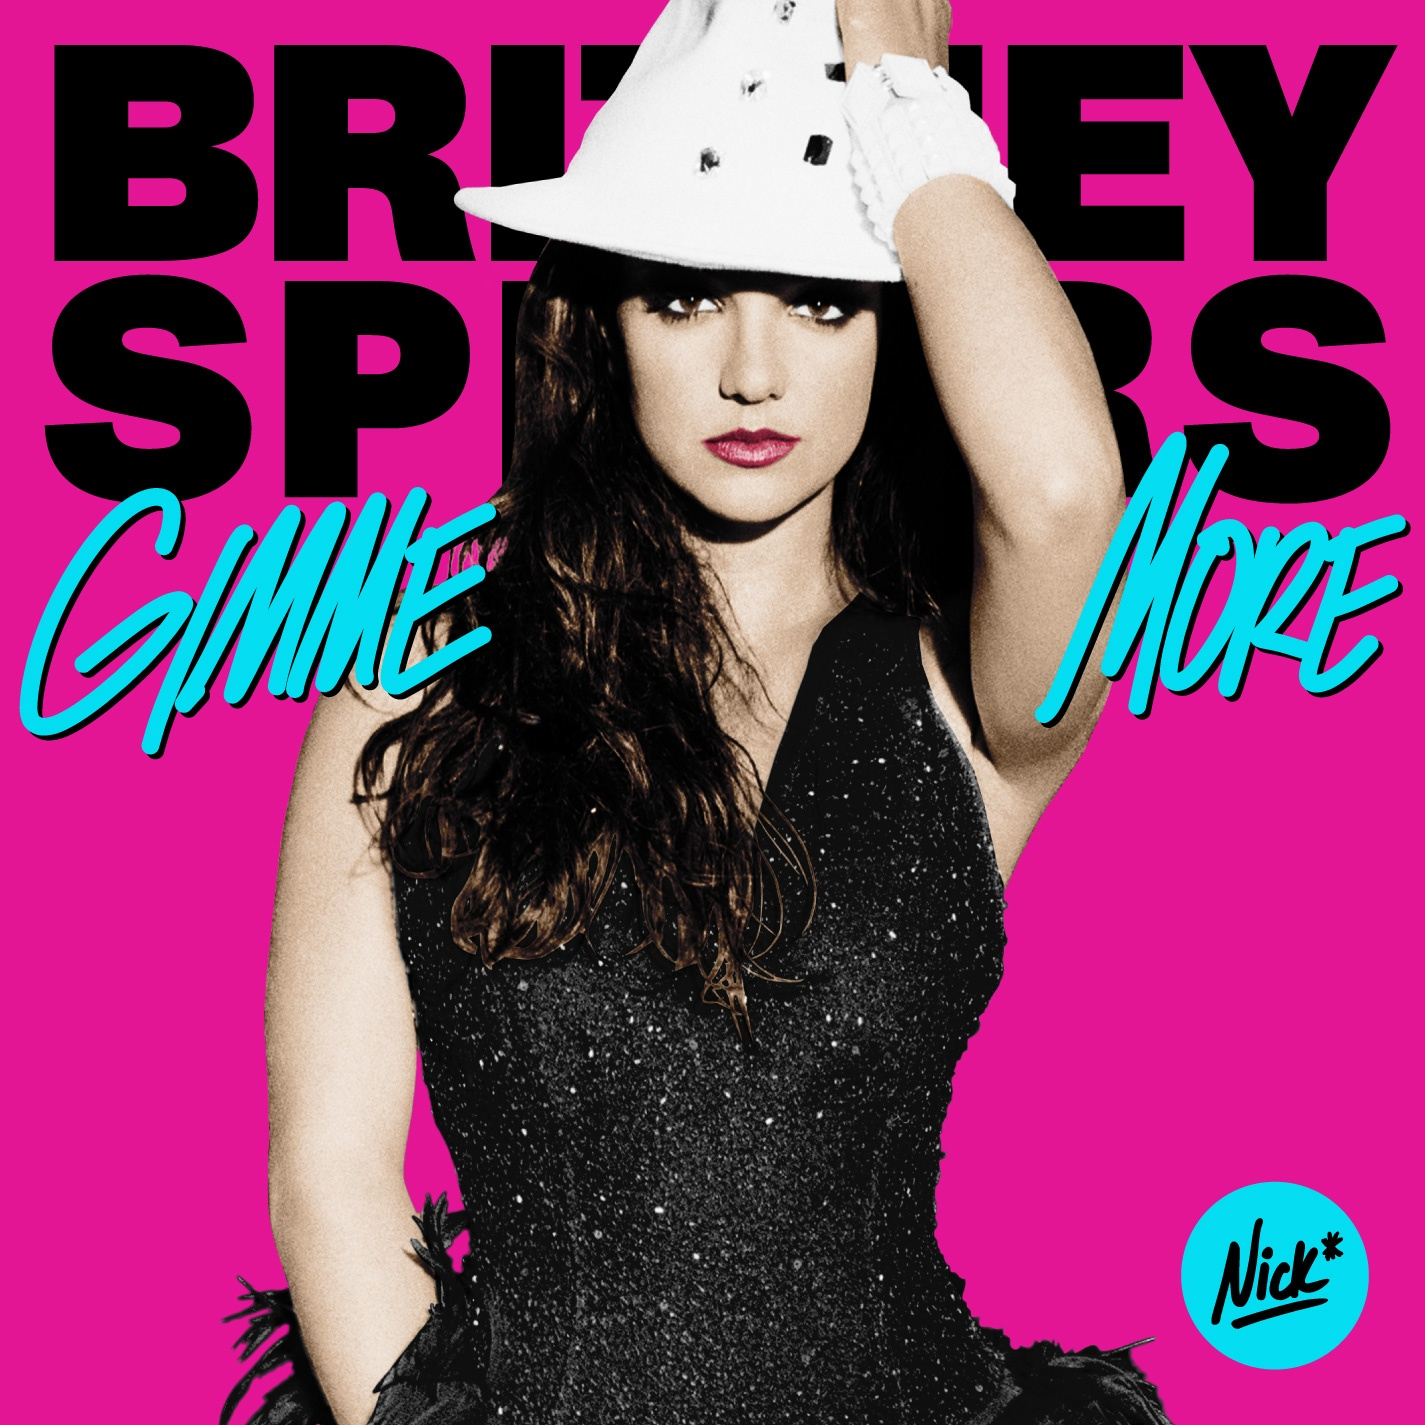 Britney Spears - Gimme More Nick* Midnight FM Remix